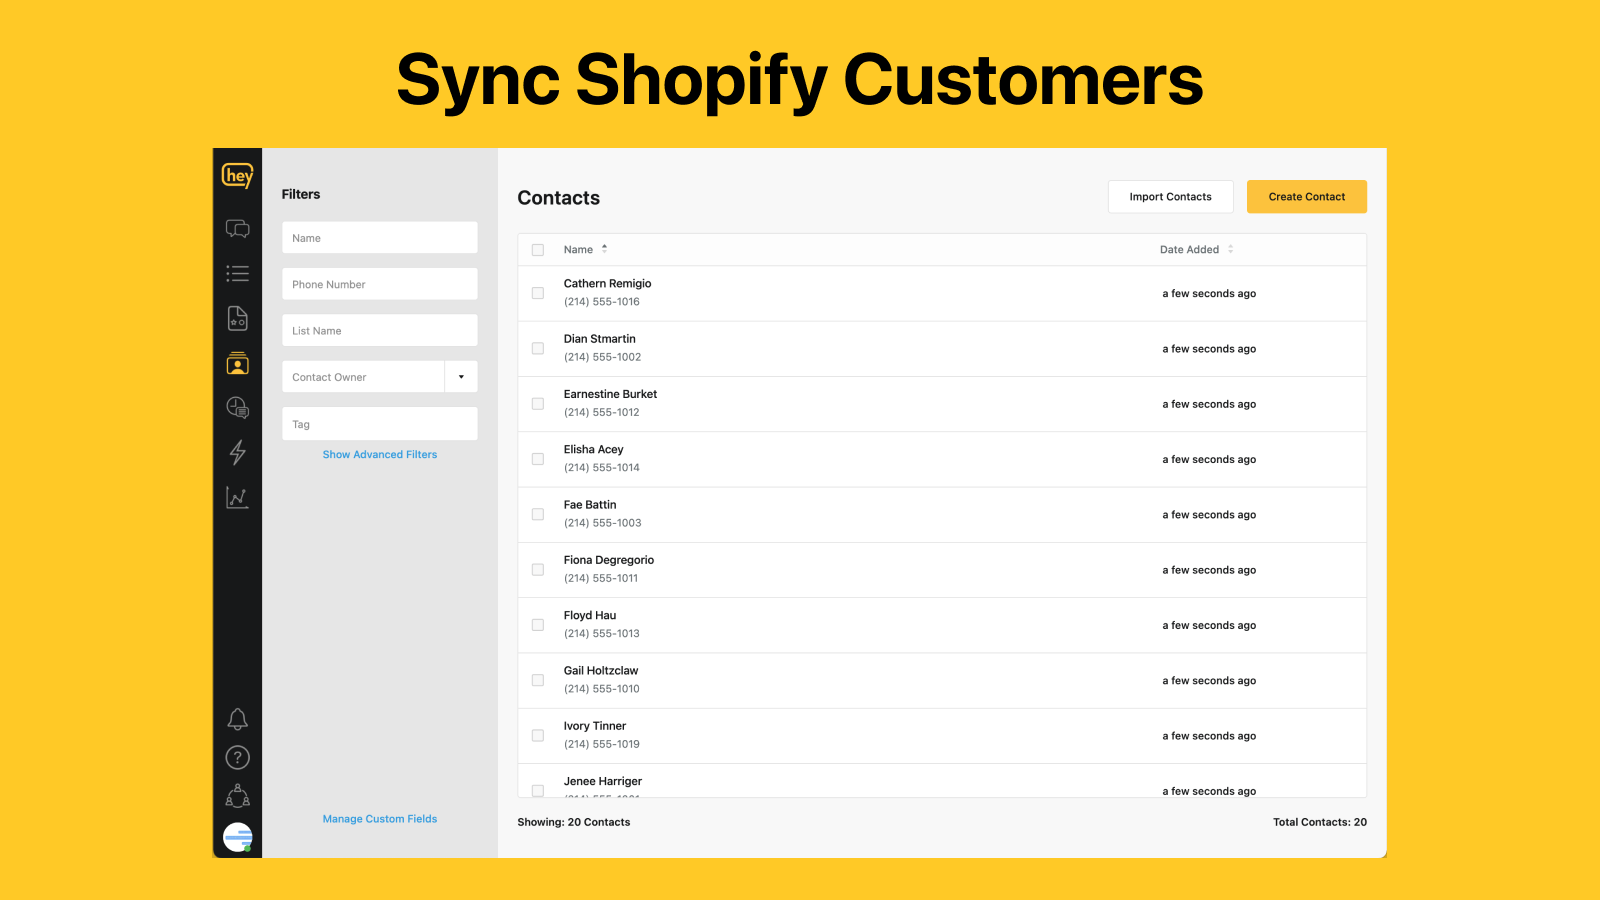 Sync Shopify Customers